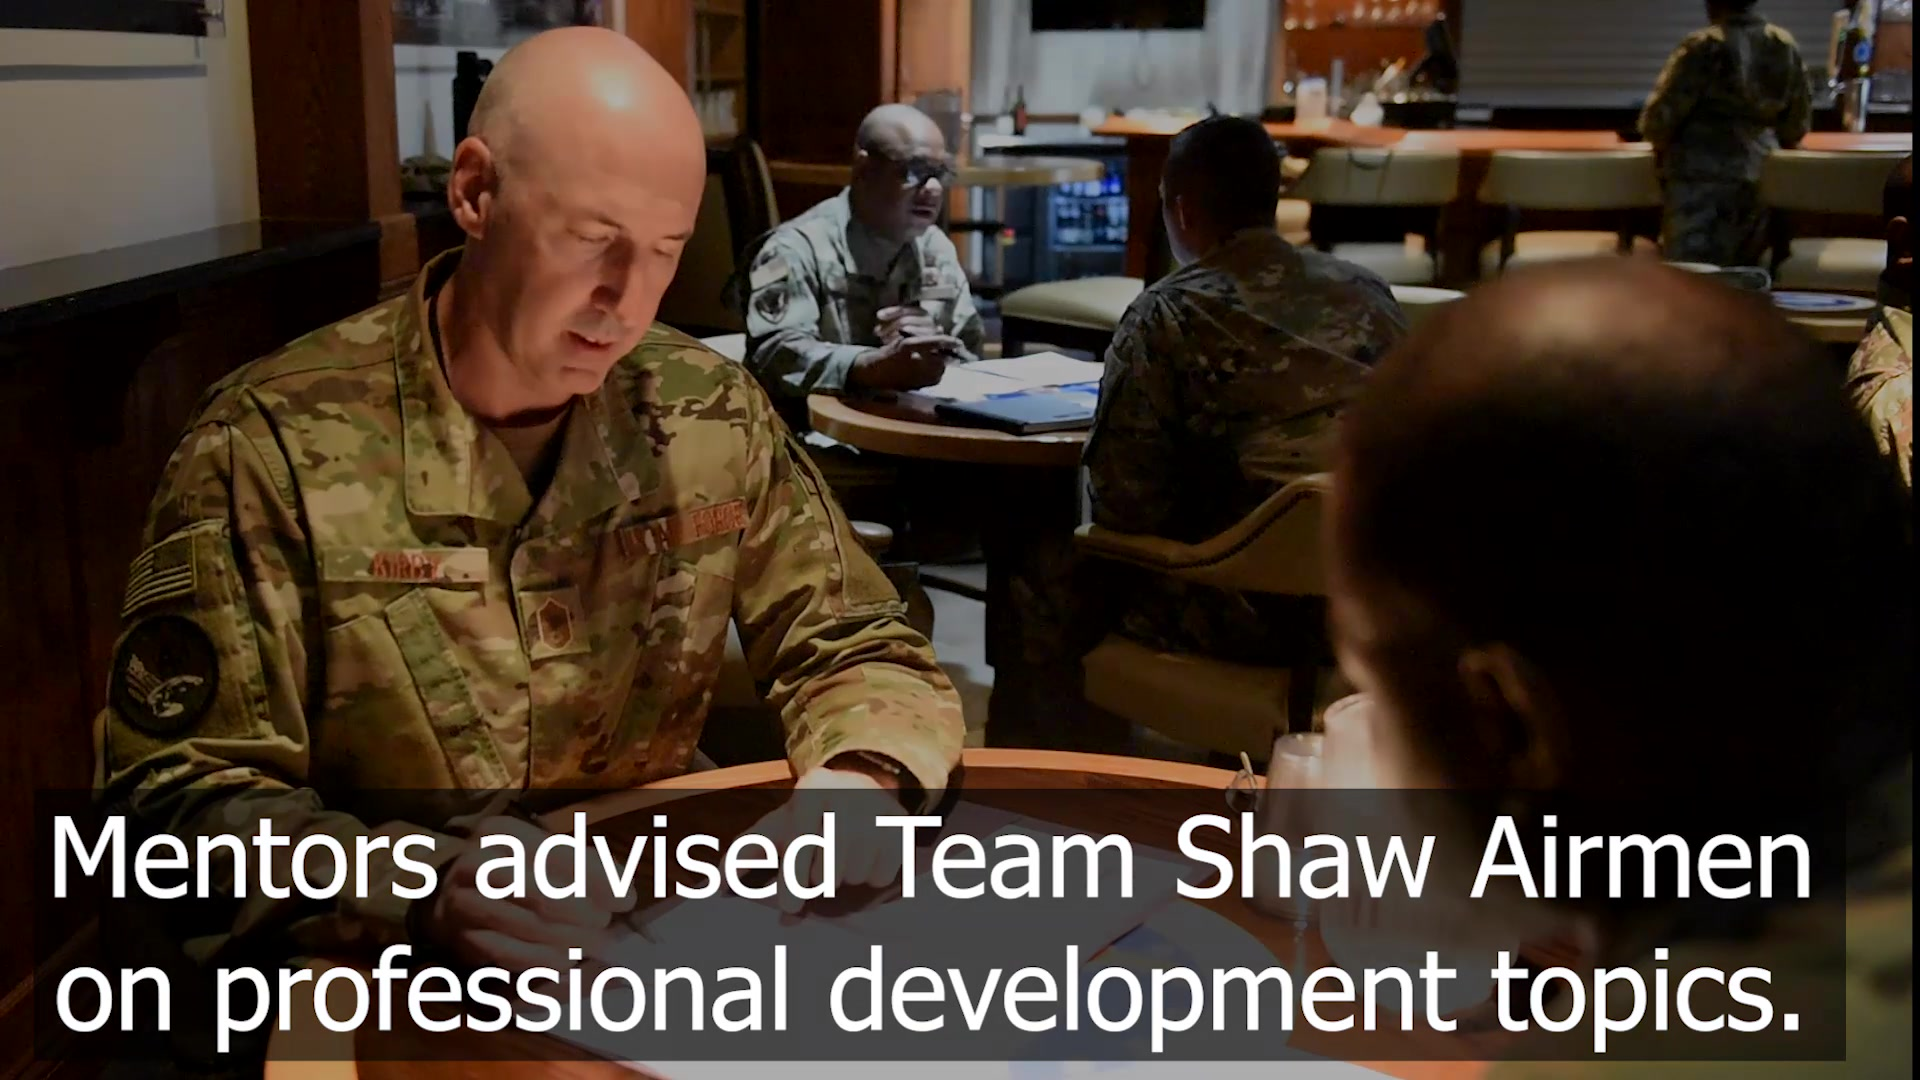 AFCENT Chiefs hosted a speed mentoring session for Team Shaw Airmen.